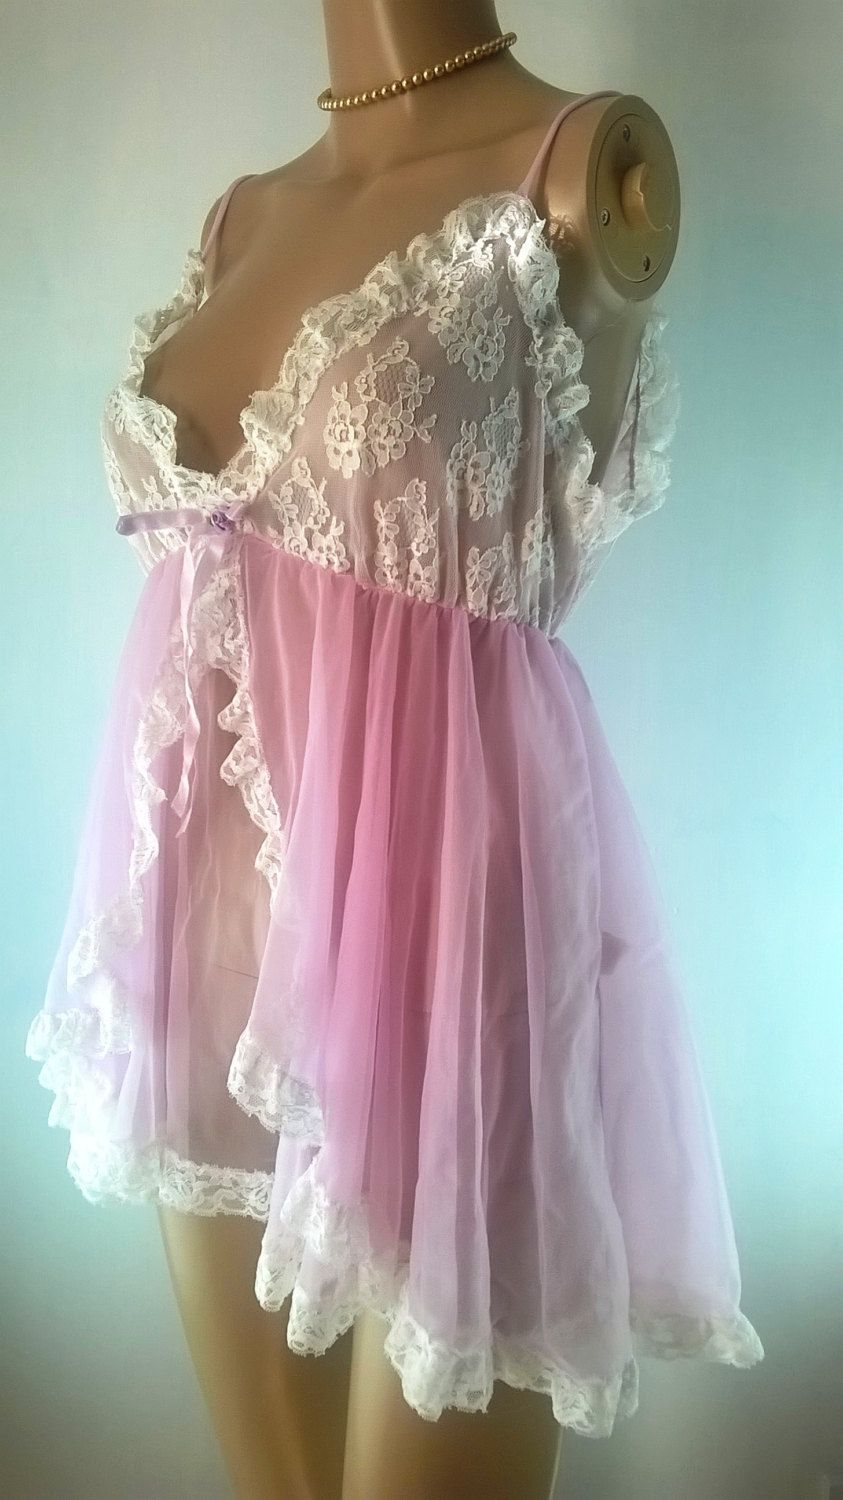 Vintage Babydoll Negligee 1960s Pink Chiffon Nylon Nightie Vintage Lingerie  Size Small Tosca Made In California 60s Pink Lace Nightgown by ... 30411d7e3